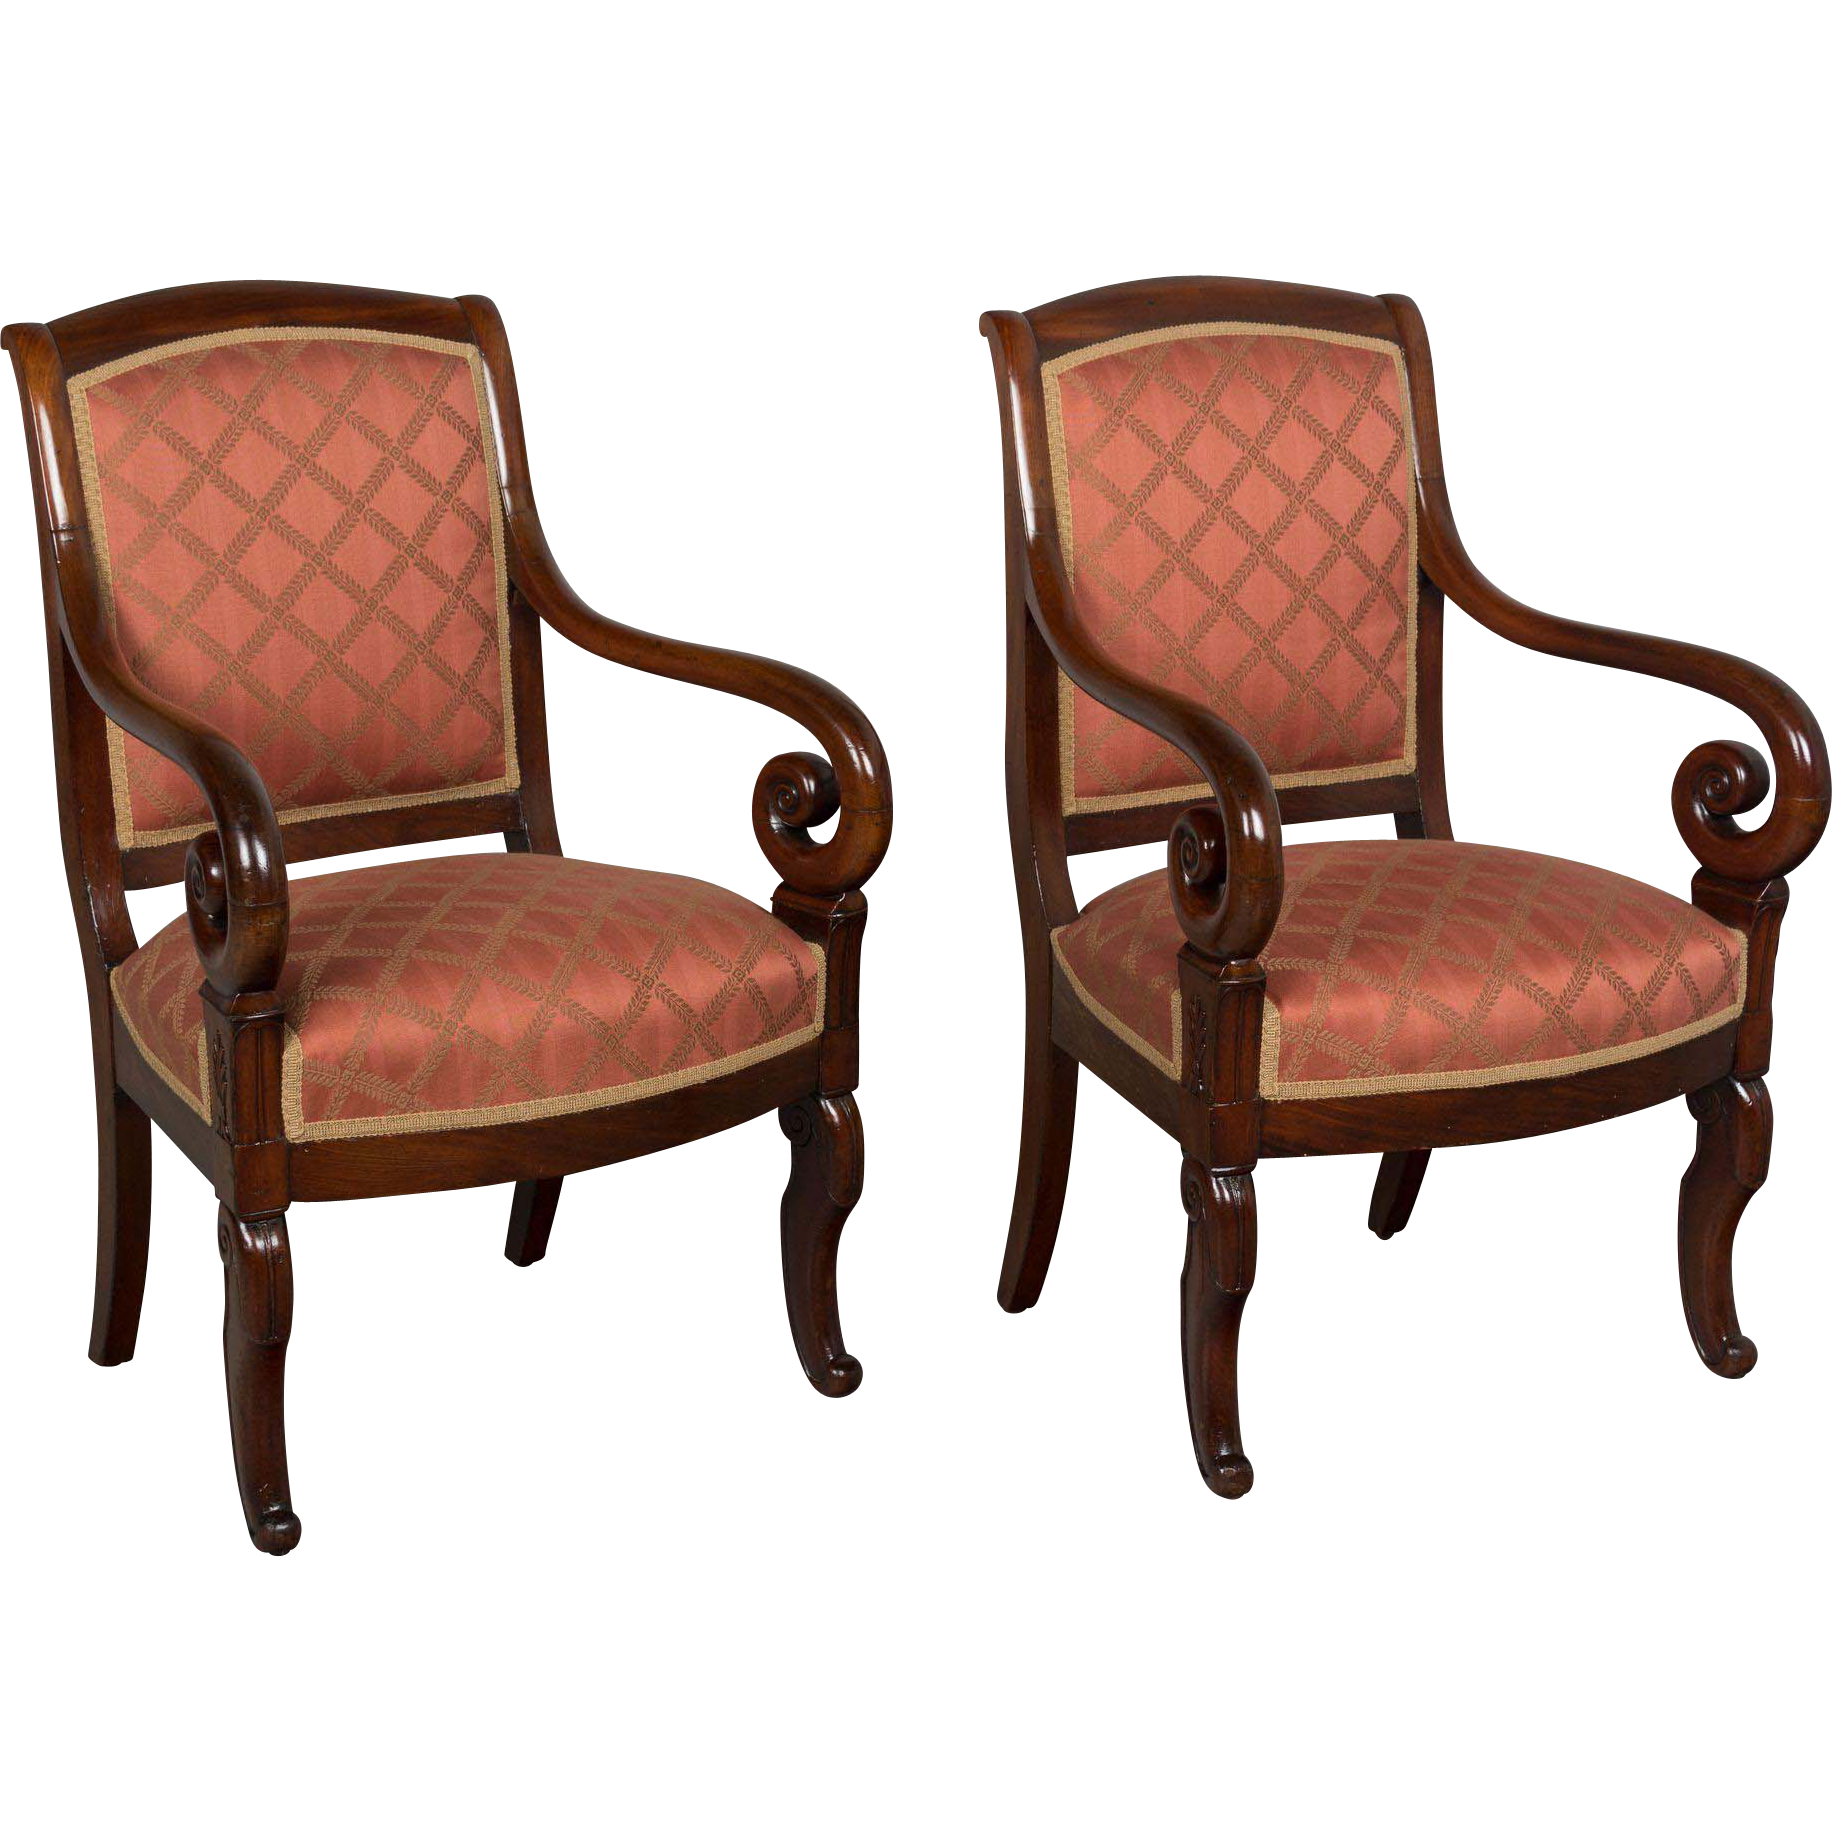 Pair of 19th c. French Restauration Armchairs